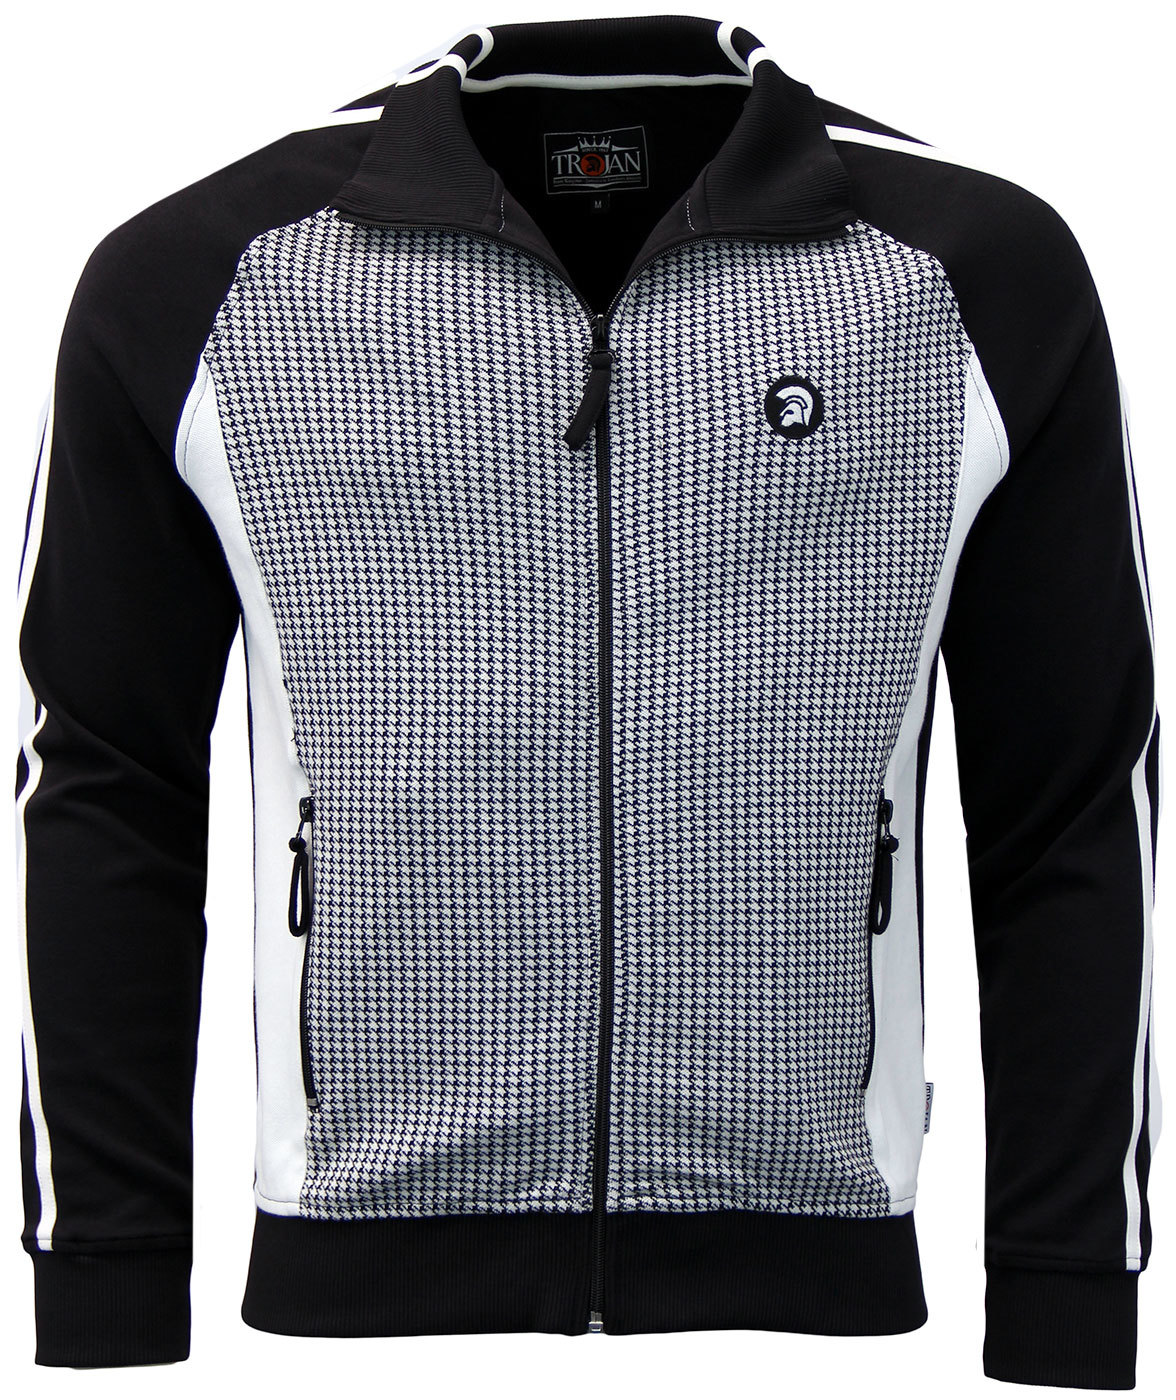 TROJAN RECORDS Retro Mod Dogtooth Panel Track Top